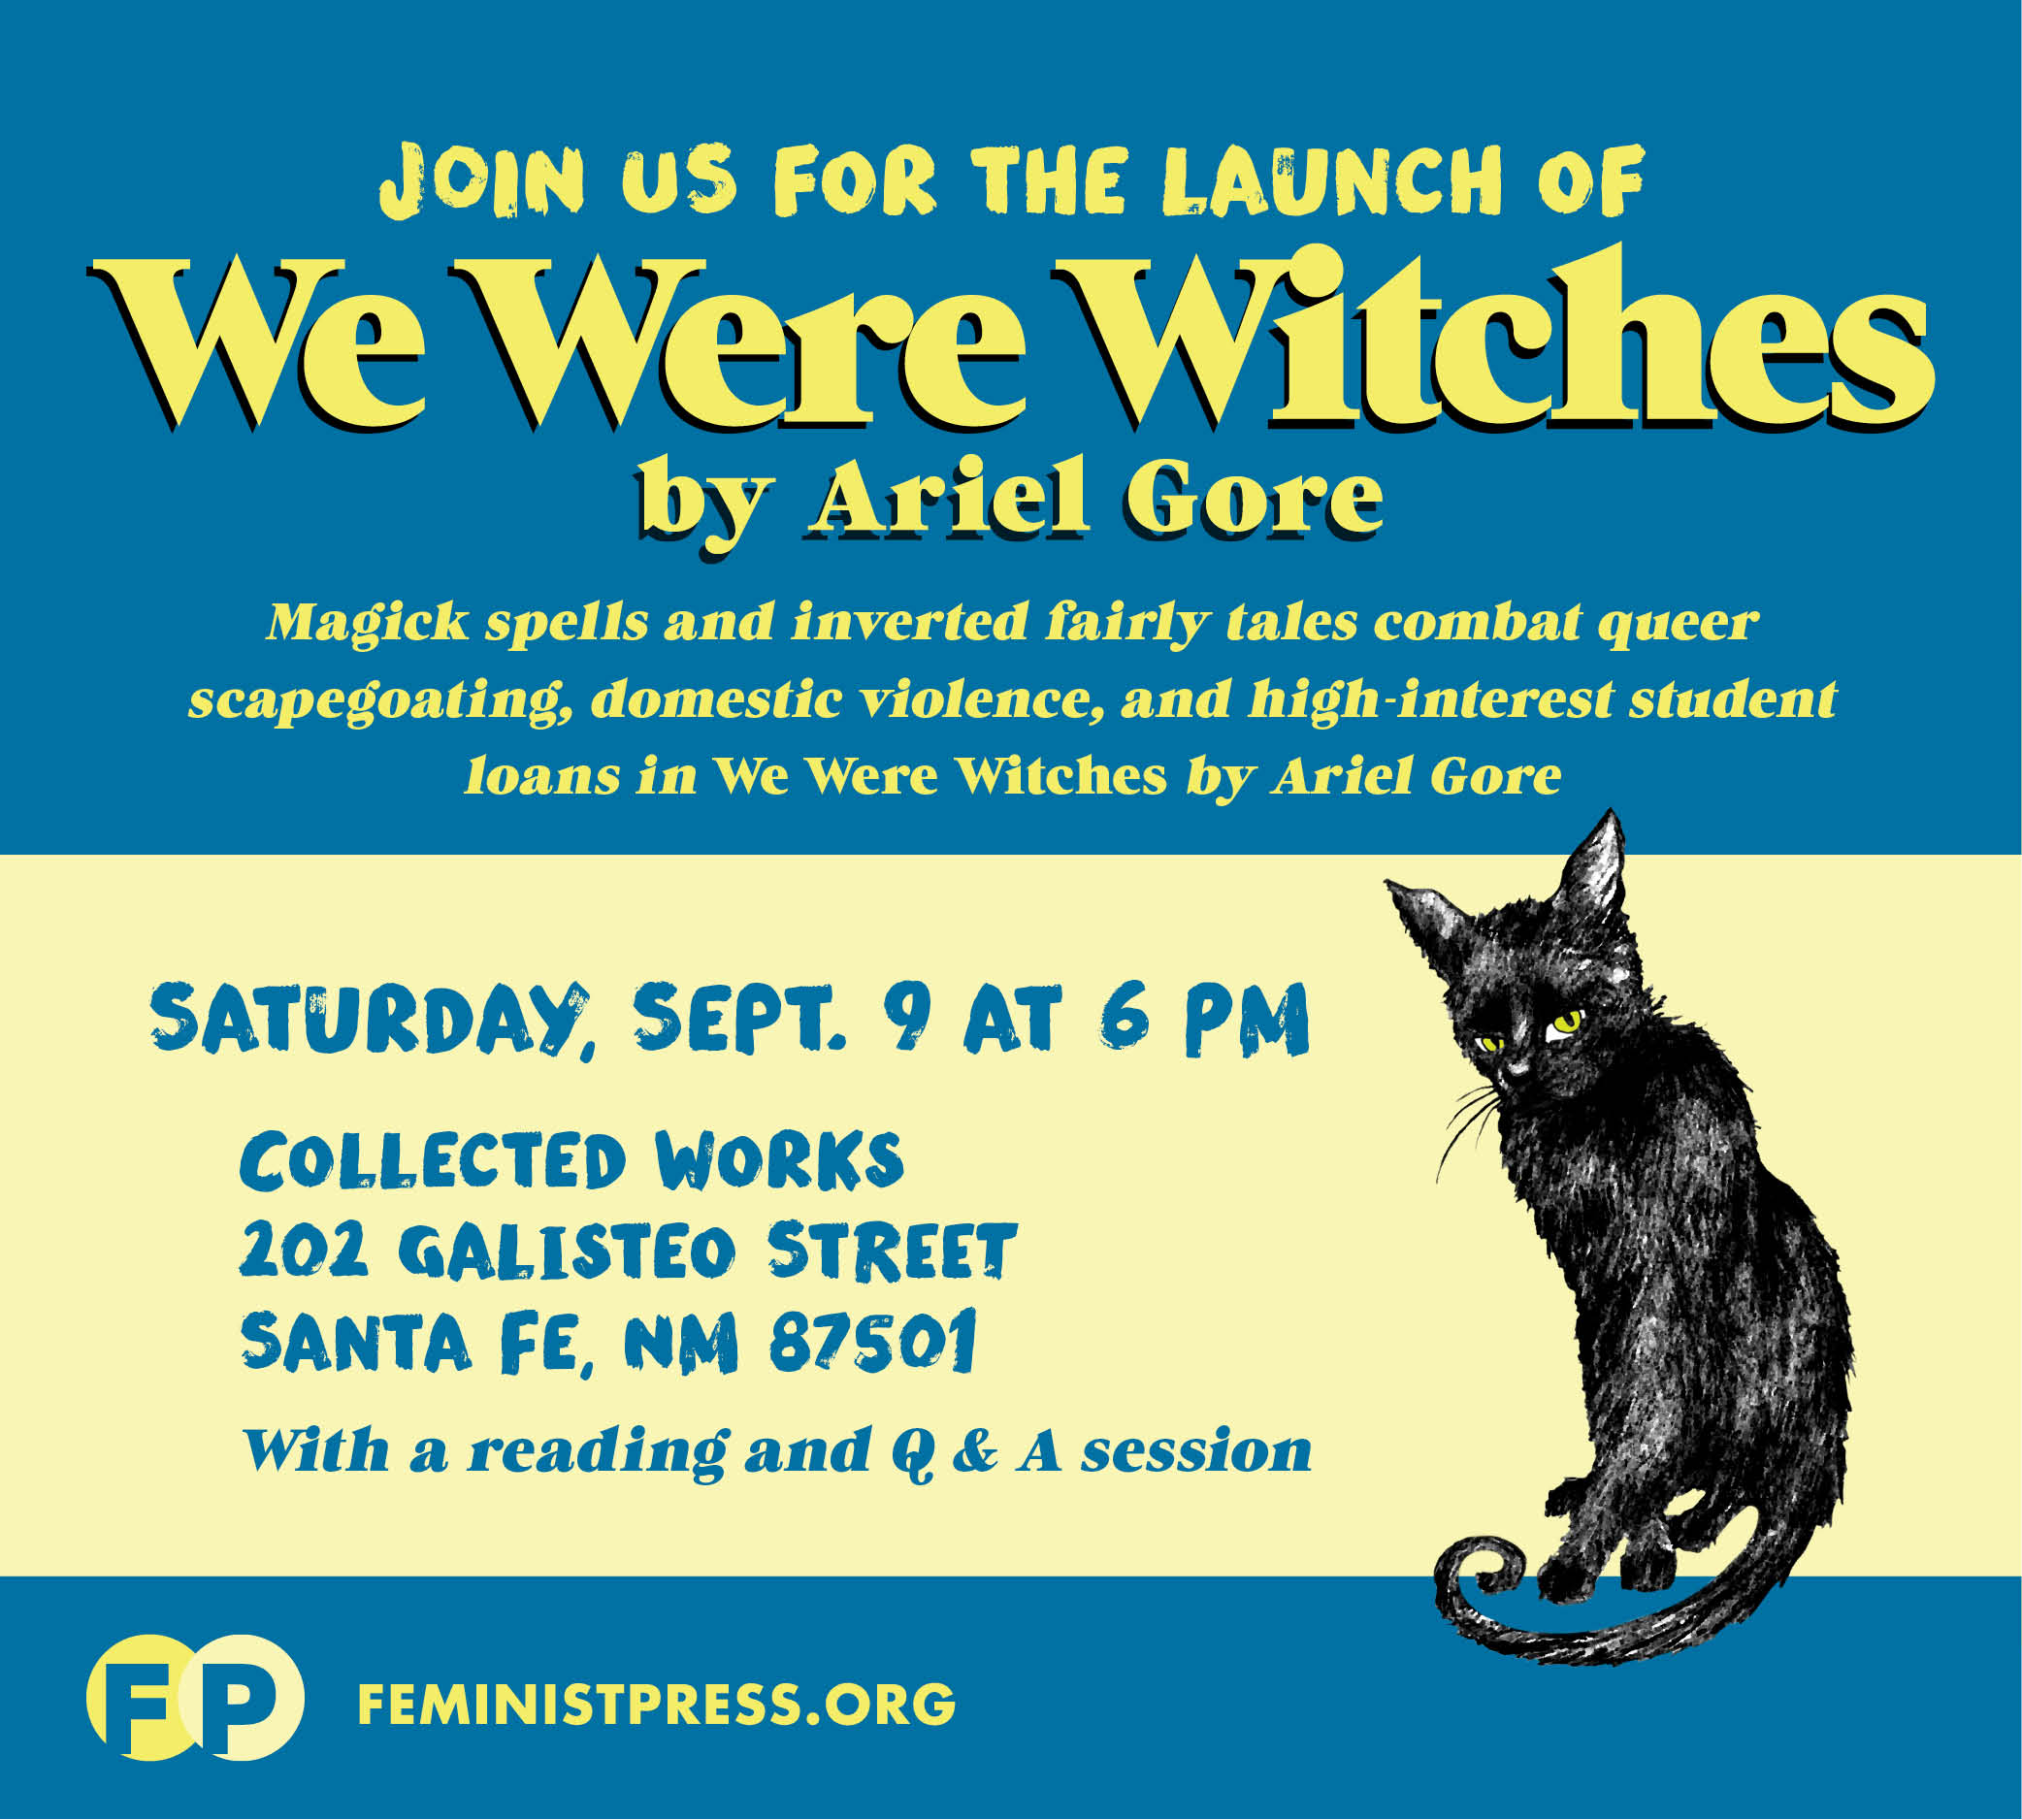 WE_WERE_WITCHES_Event_eblast_COLLECTED_WORKS.jpg